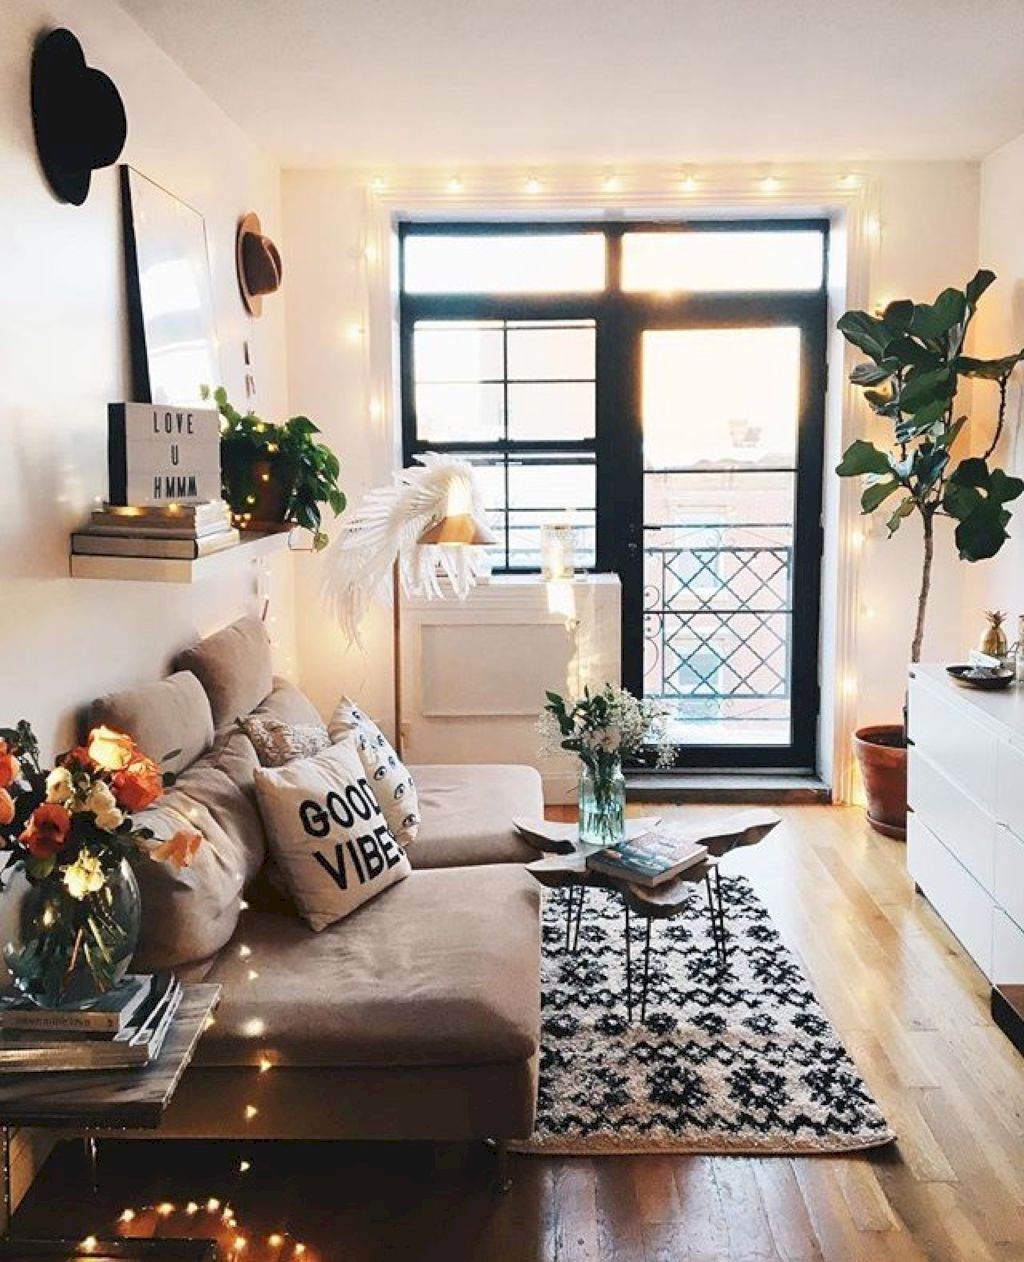 Best Pictures Images And Photos About Small Living Room Ideas For Apartment Livingroo Small Apartment Living Room College Apartment Decor Home Decor Bedroom